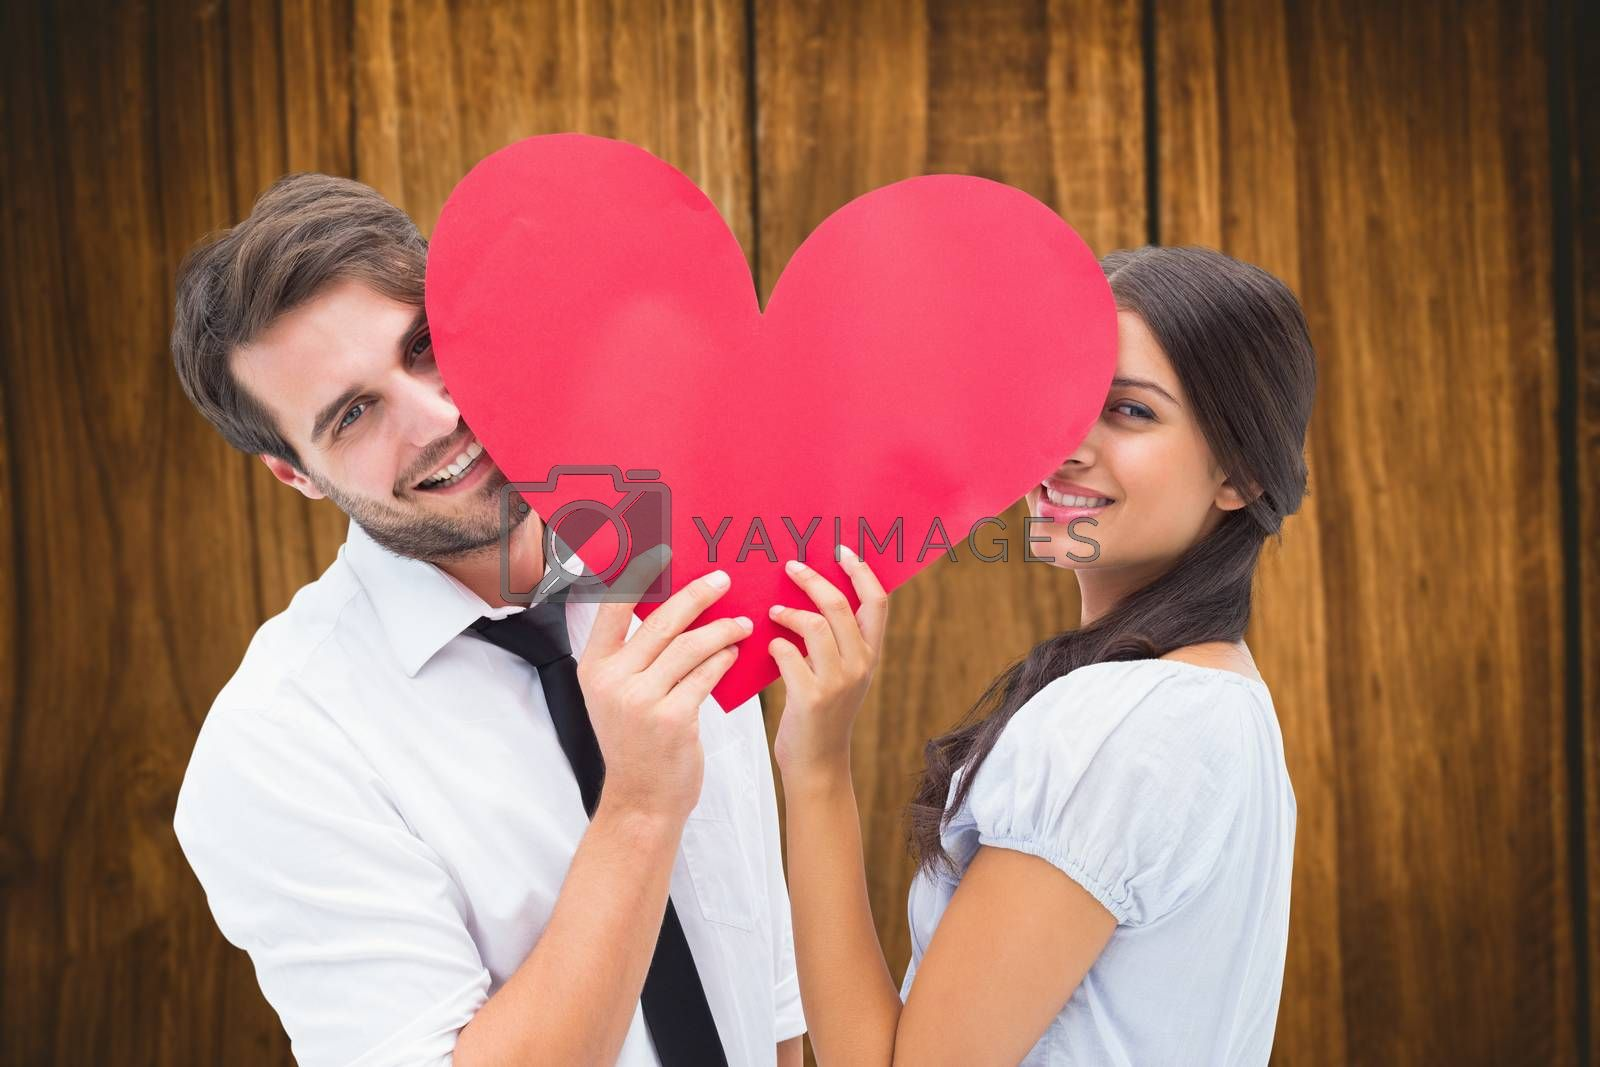 Couple smiling at camera holding a heart against wooden table